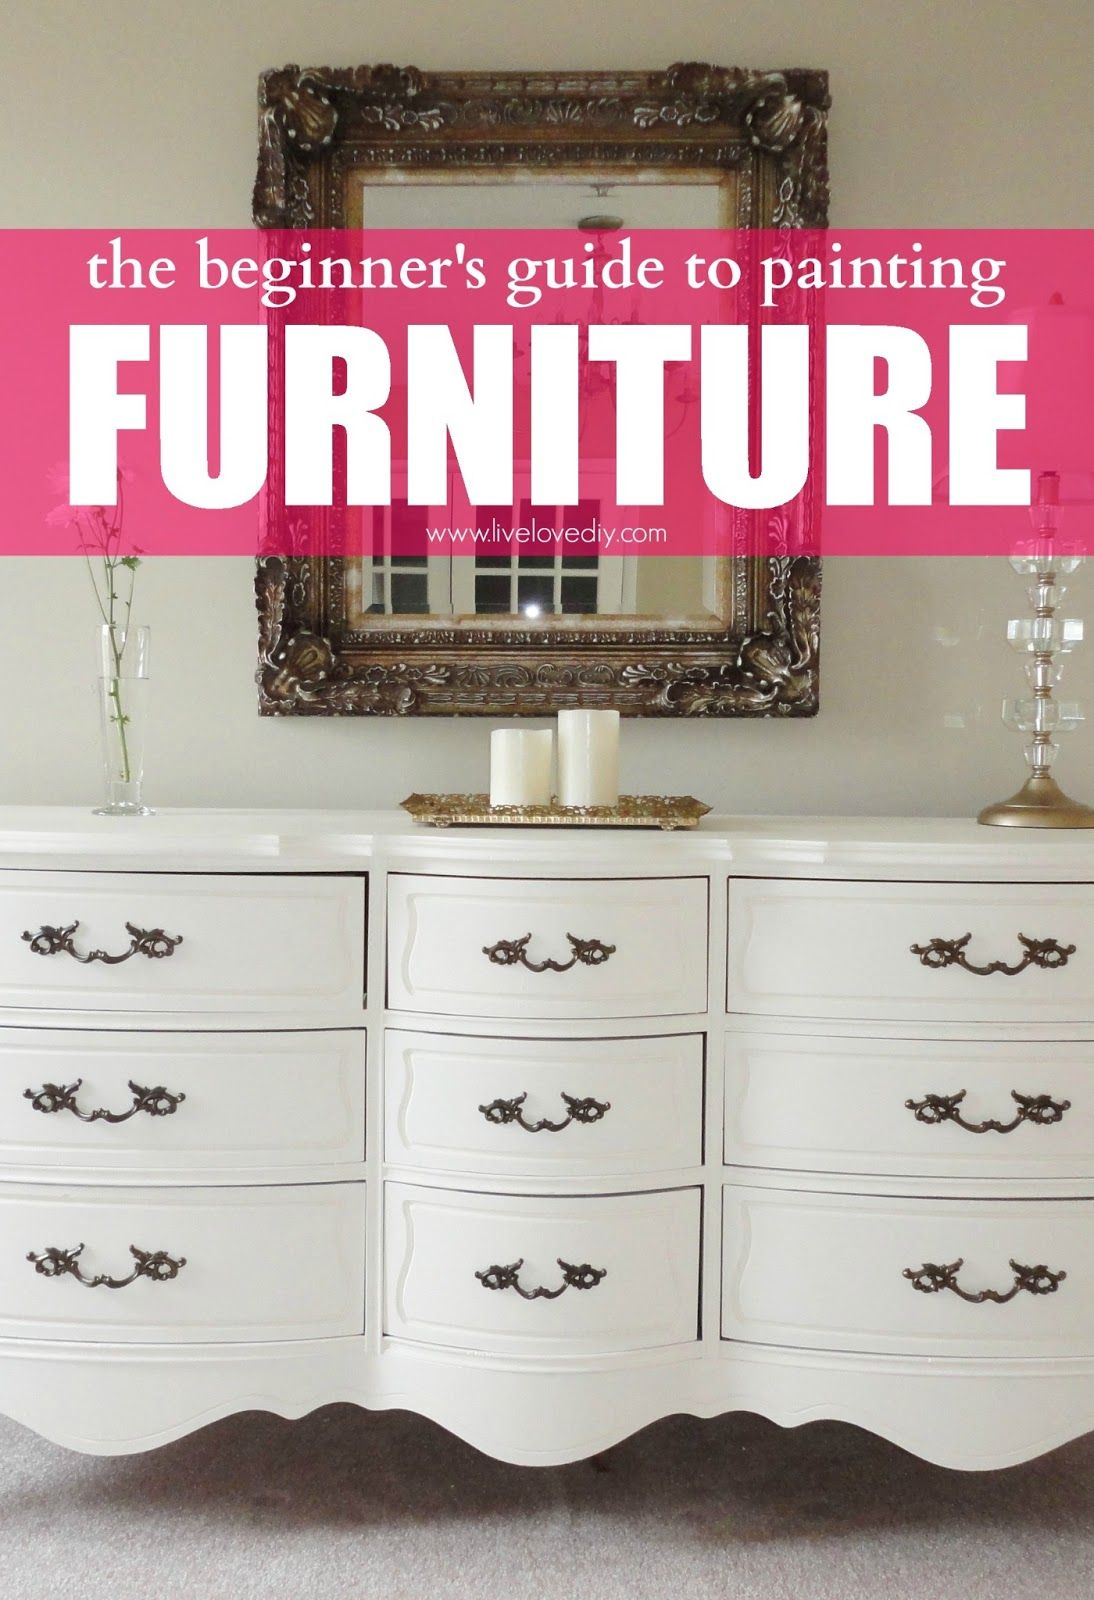 diy furniture refinishing projects. Diy Furniture Refinishing Projects. 10 DIY Home Improvement Ideas: How To Make The Most Projects